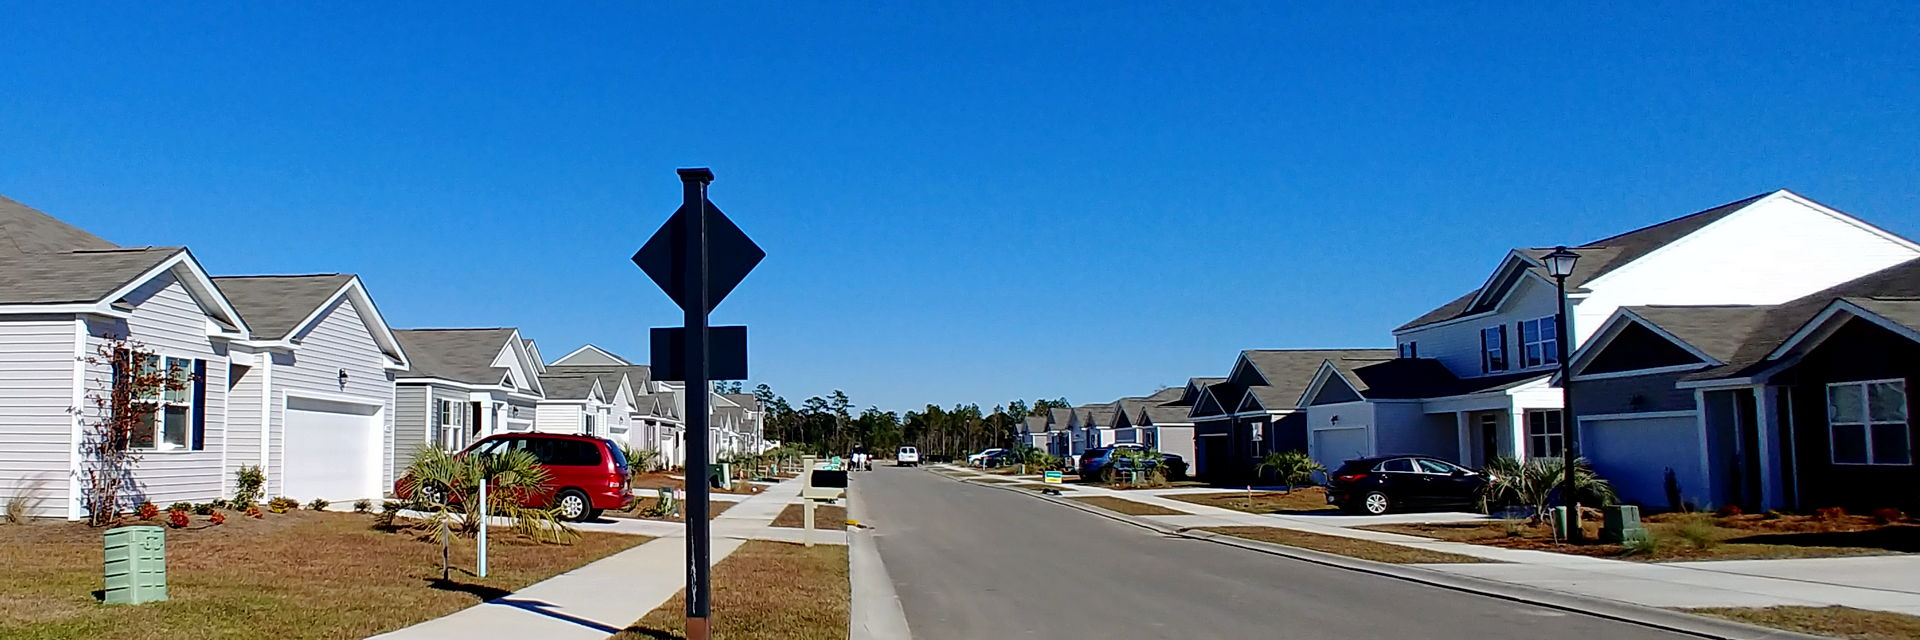 Meridian at Market Common Homes For Sale, Myrtle Beach SC